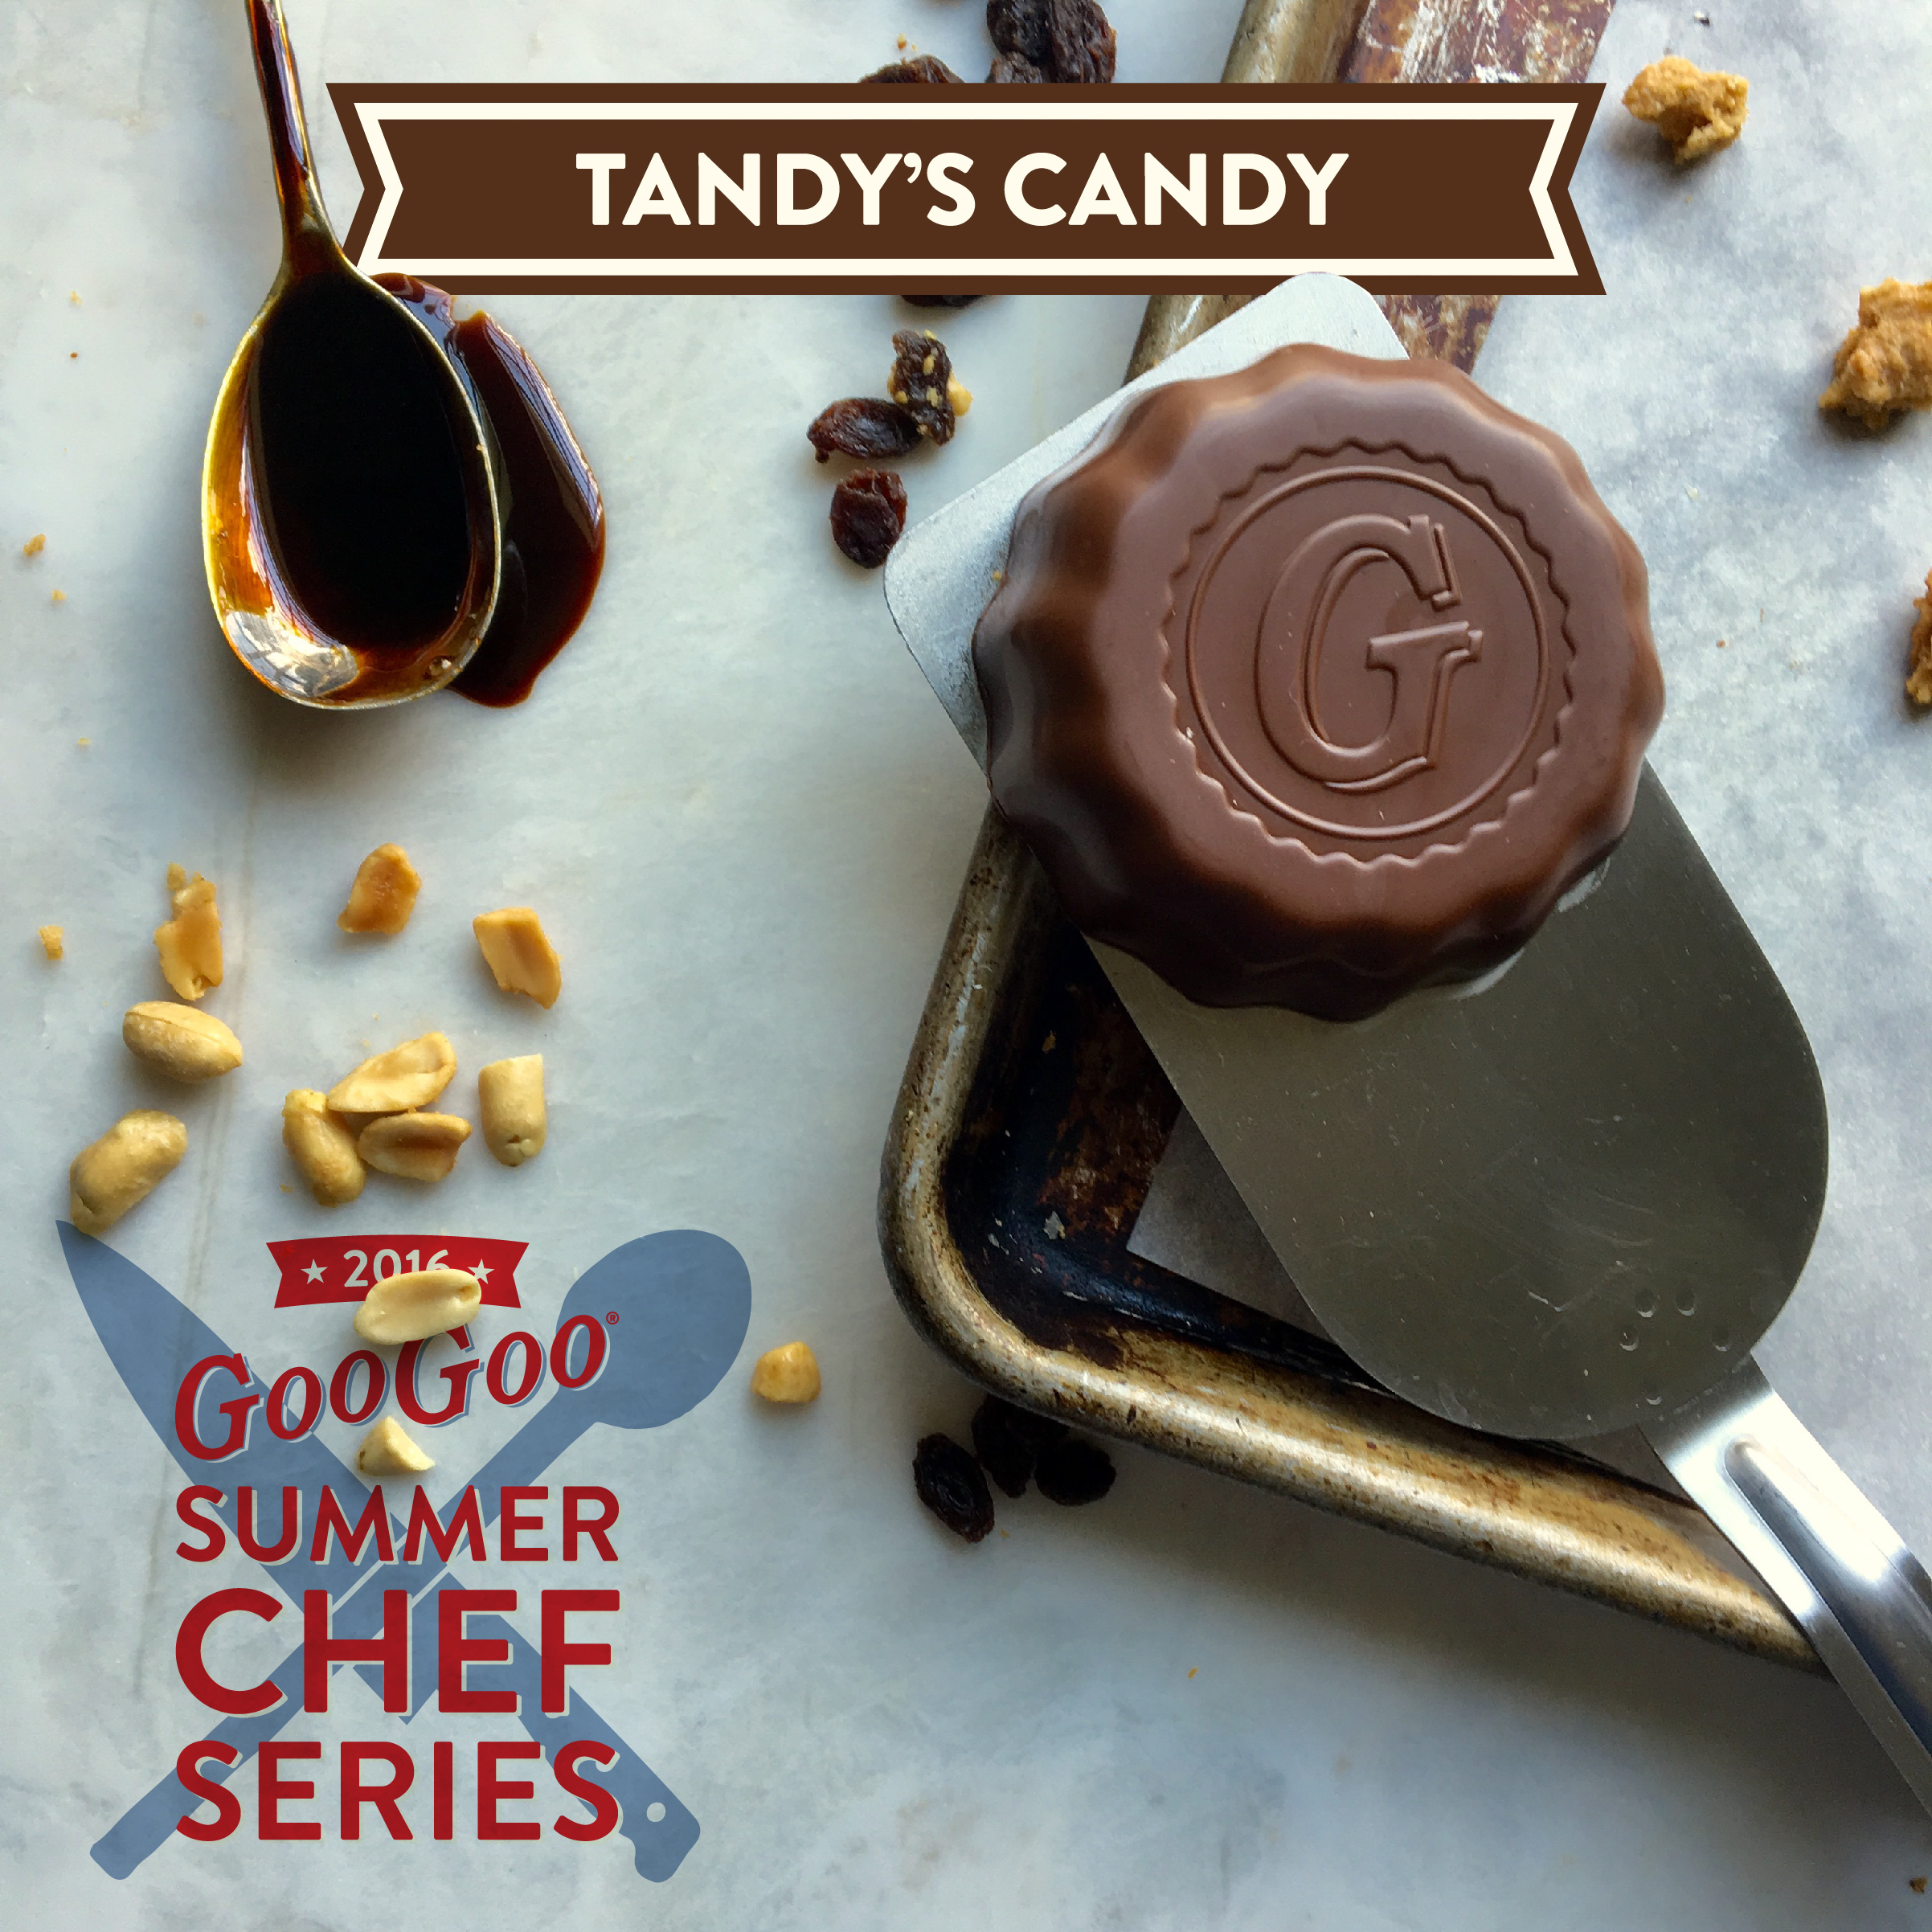 Summer Chef Series: Tandy's Candy Image